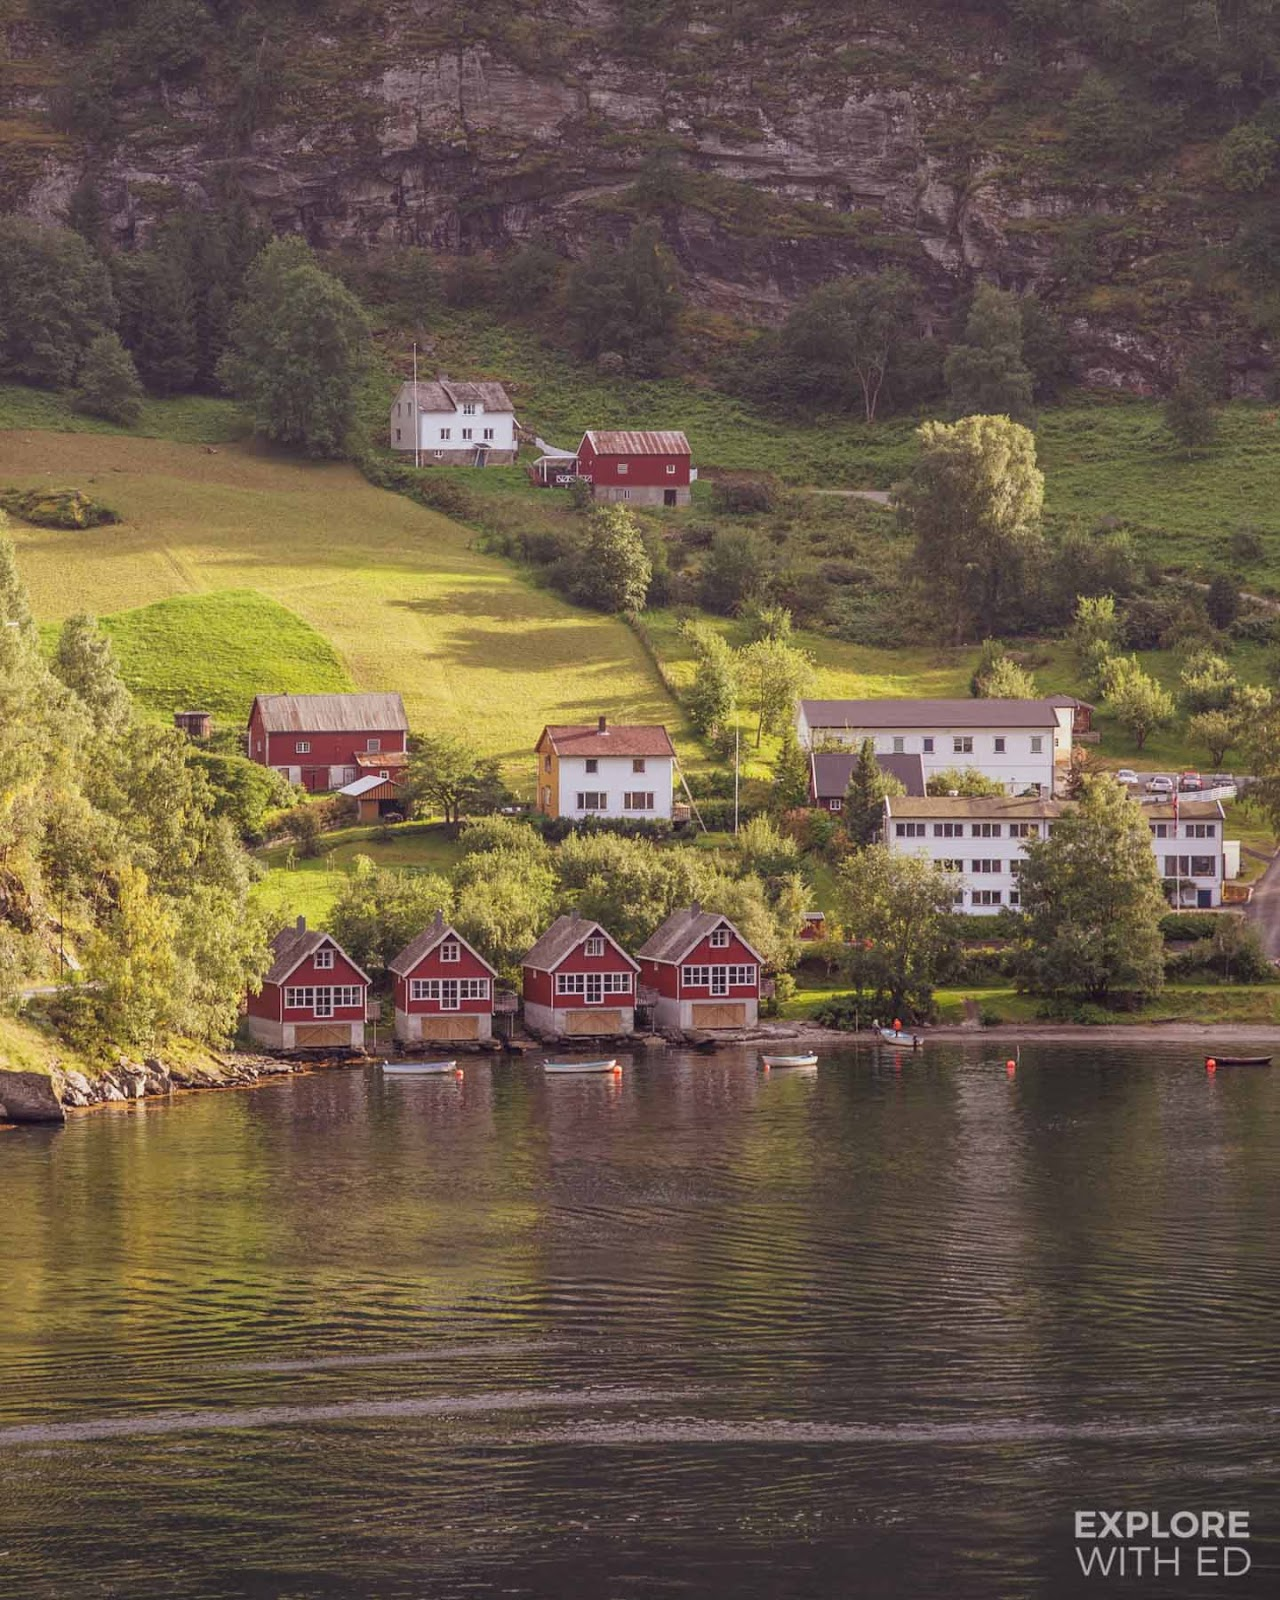 The port of Flam in Norway